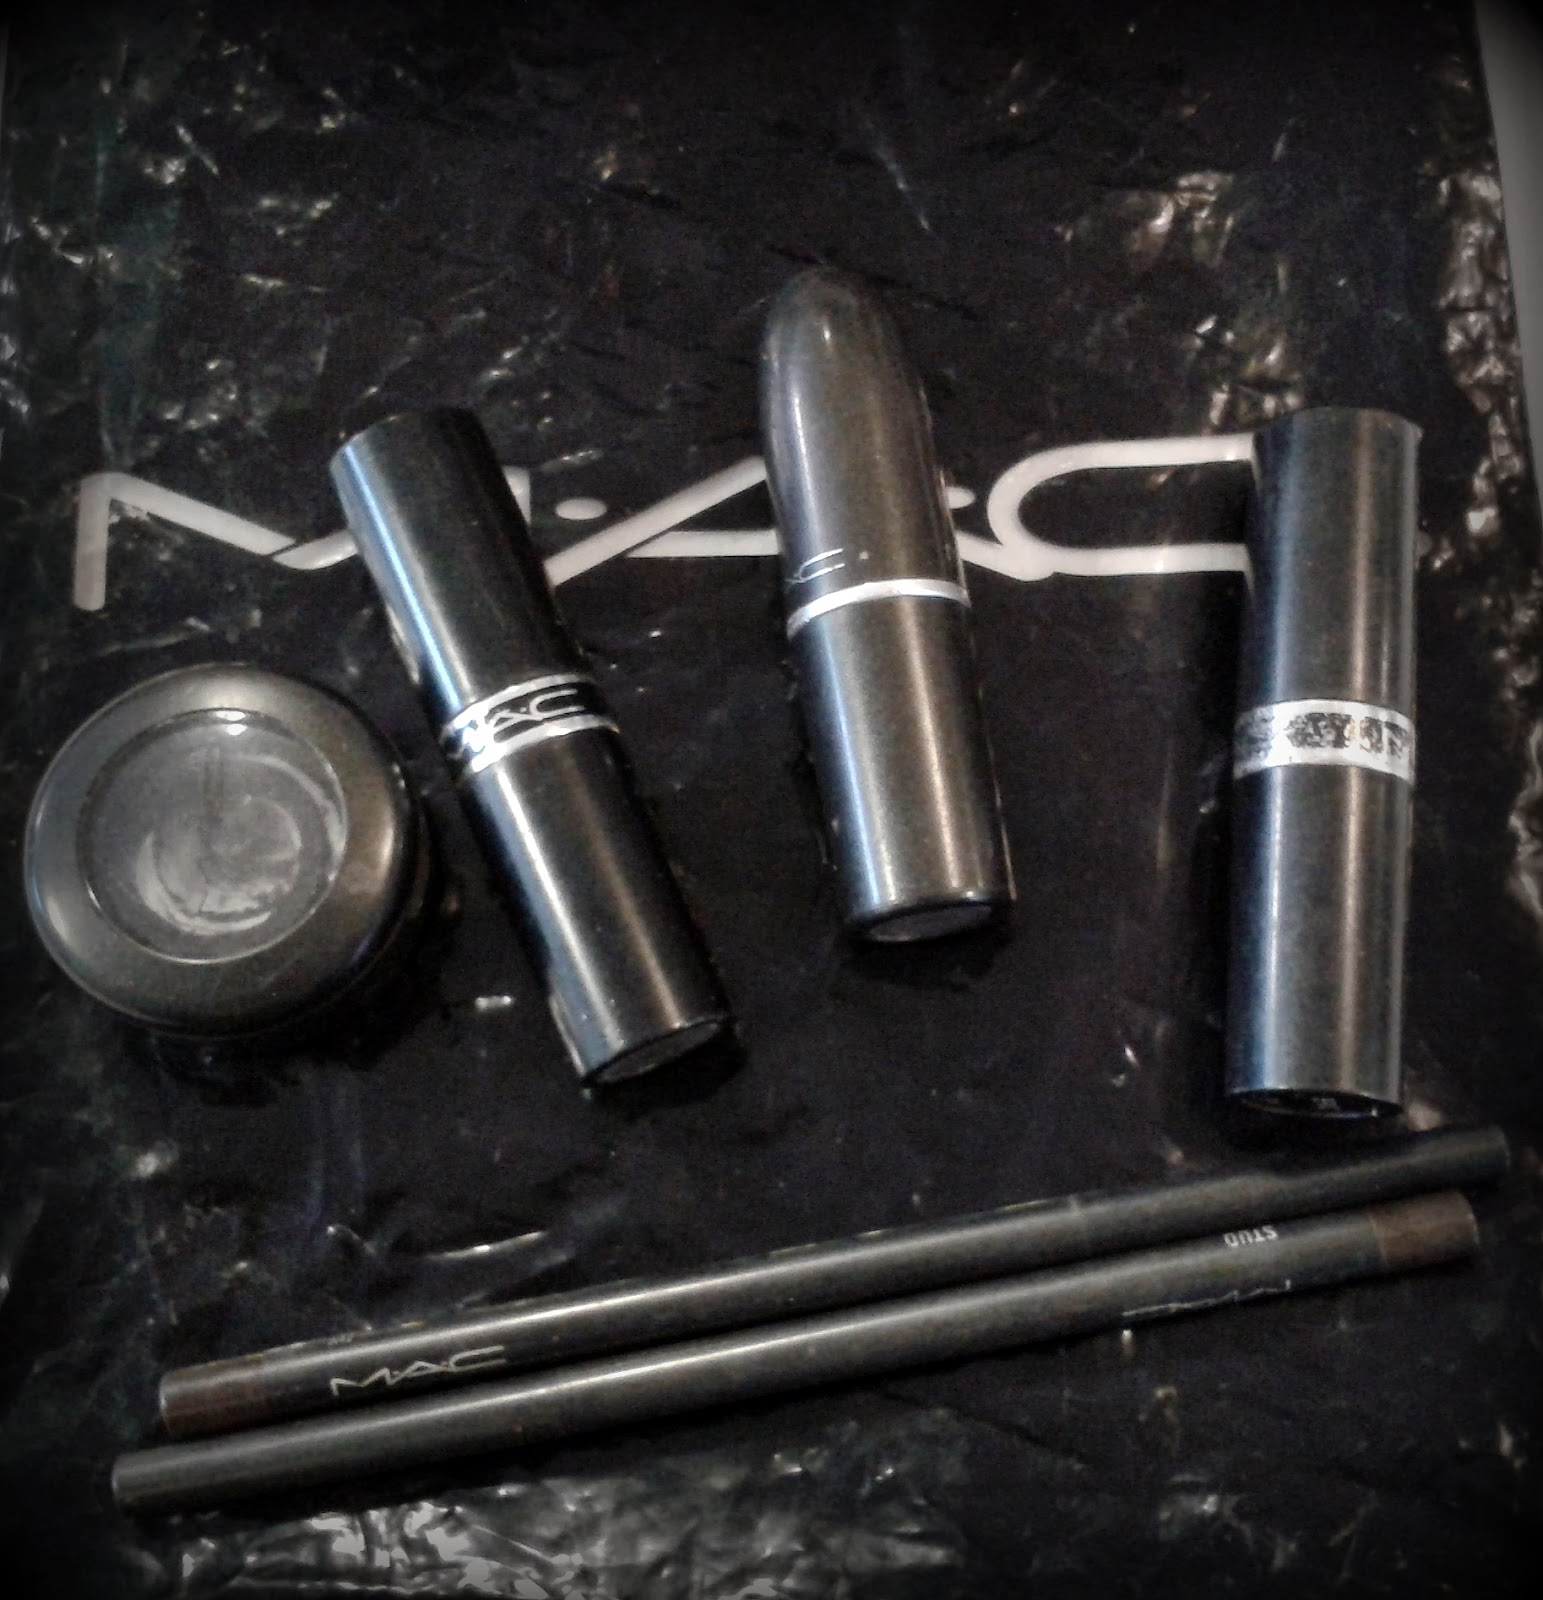 Return to MAC, MAC empty containers, MAC cosmetics